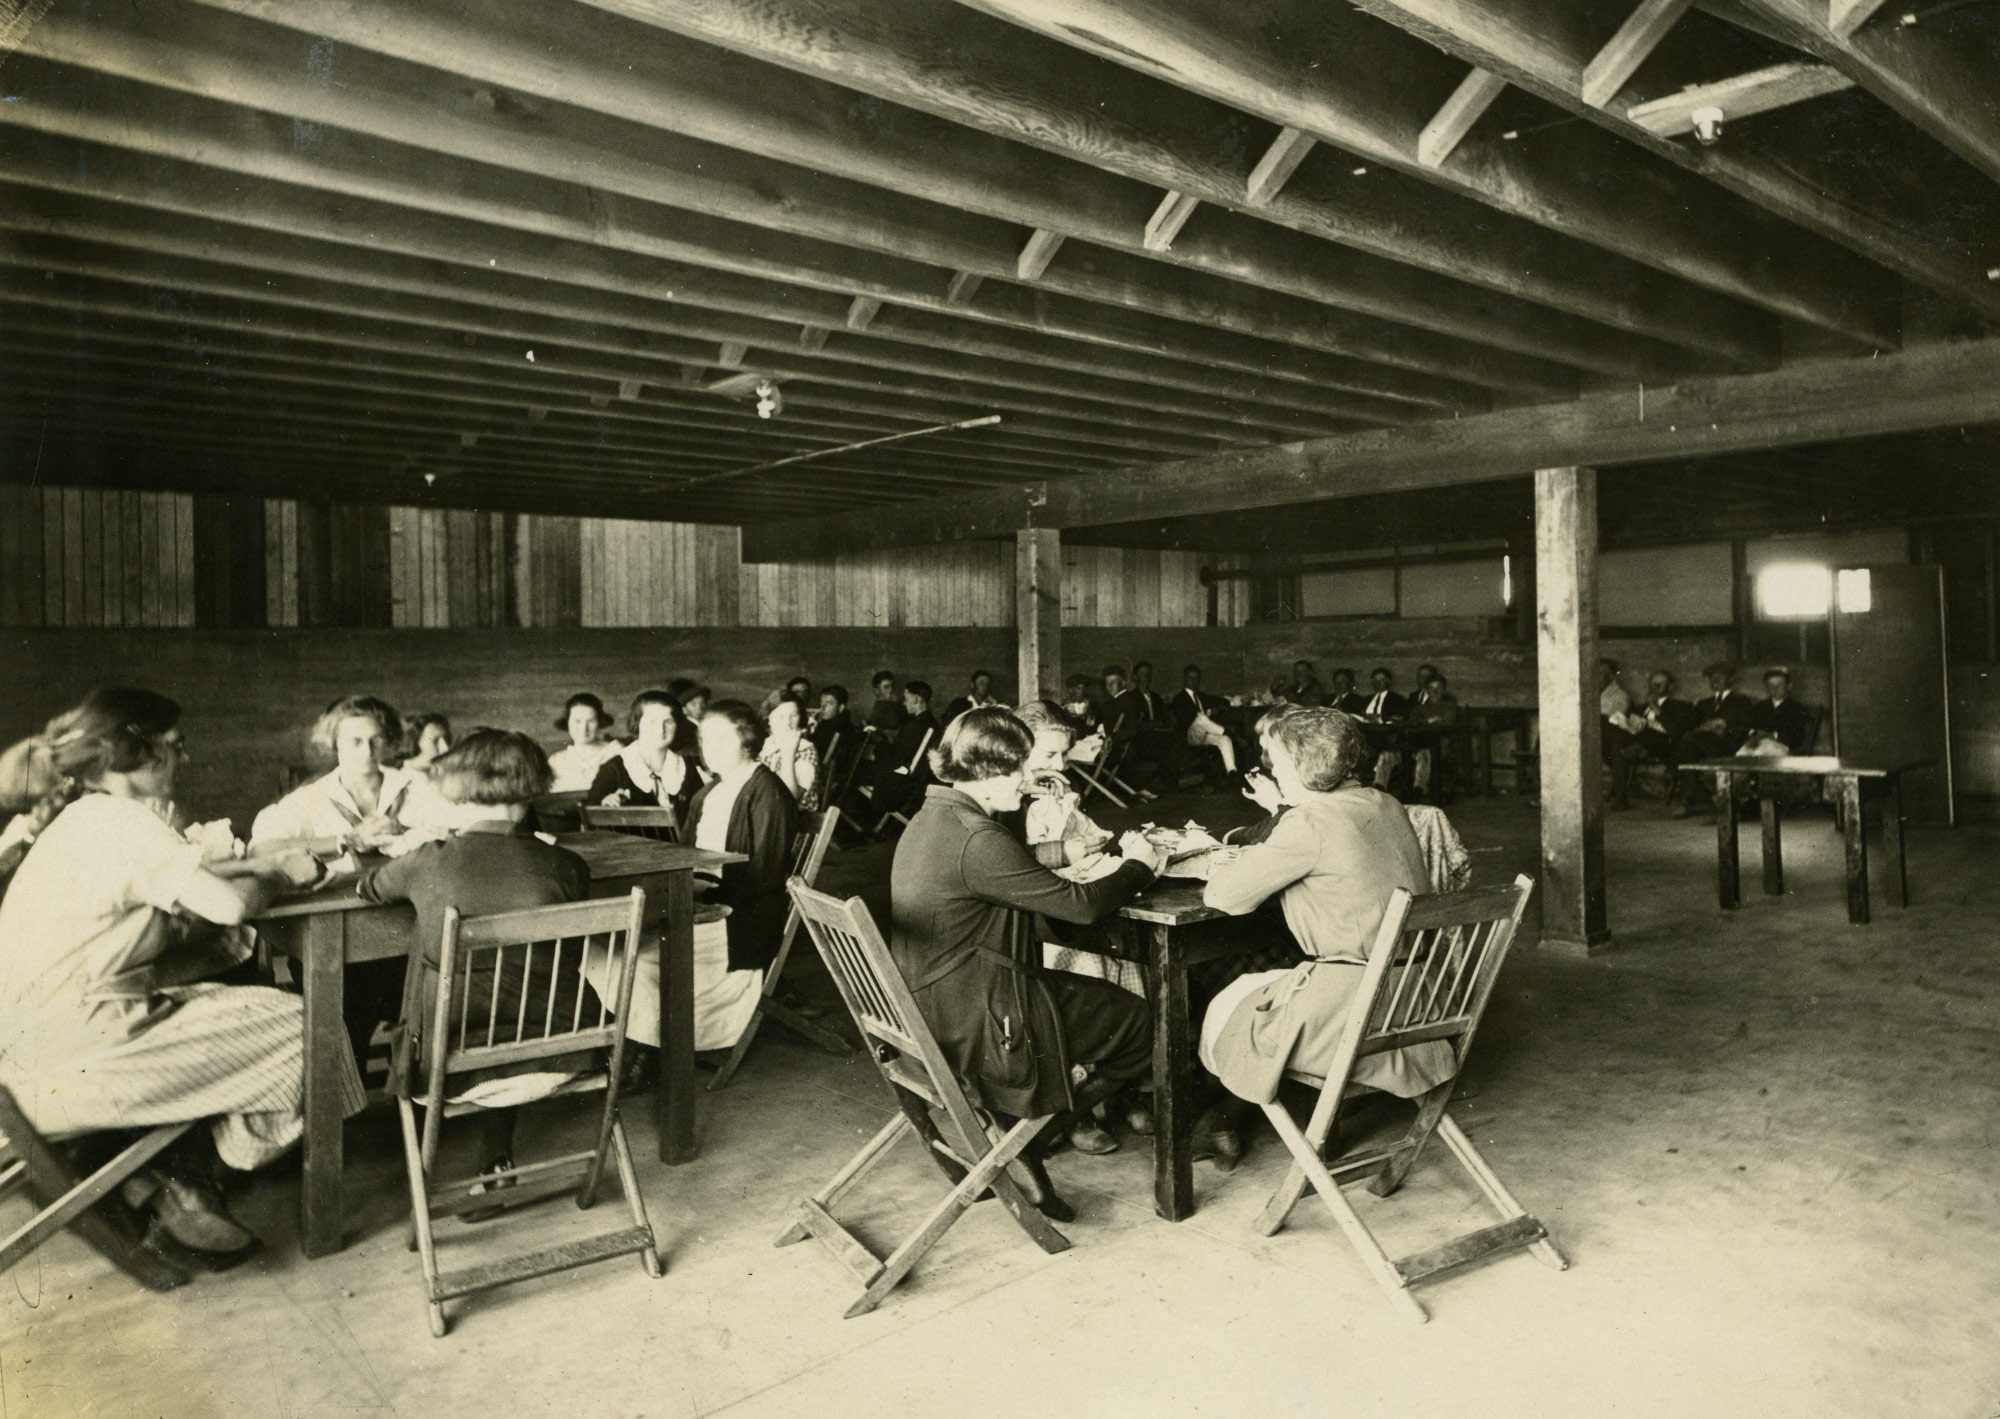 Tomales High School's cafeteria occupied the auditorium's lower level. Today a section of this space serves as the TRHC's meeting room.